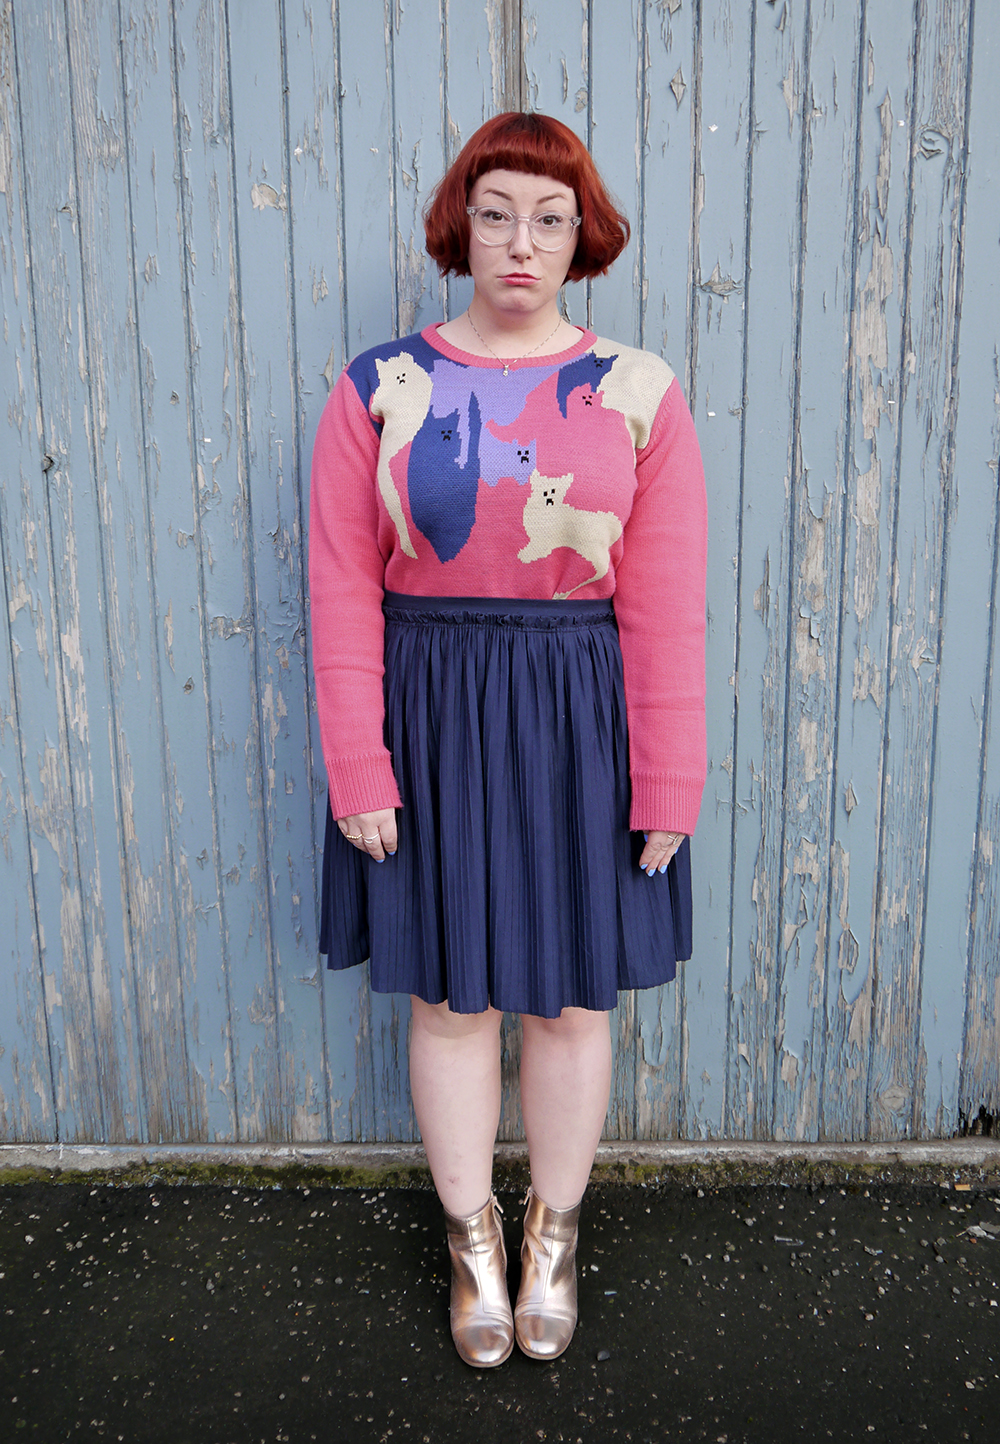 Styled by Helen, Scottish blogger, Dundee blogger, Scottish fashion blogger, quirky style, Scottish street style, cute style, cat clothing, dressing to a theme, cat themed clothing, cat jumper, colourful outfit, colourful street style, La La Land, colourful cat jumper, pink jumper, pink and blue outfit, red head, ginger bob, clear glasses, Iolla glasses, cat necklace, silver cat necklace, gold boots, cat pose, cute cat outfit, Wardrobe Conversations, silly face